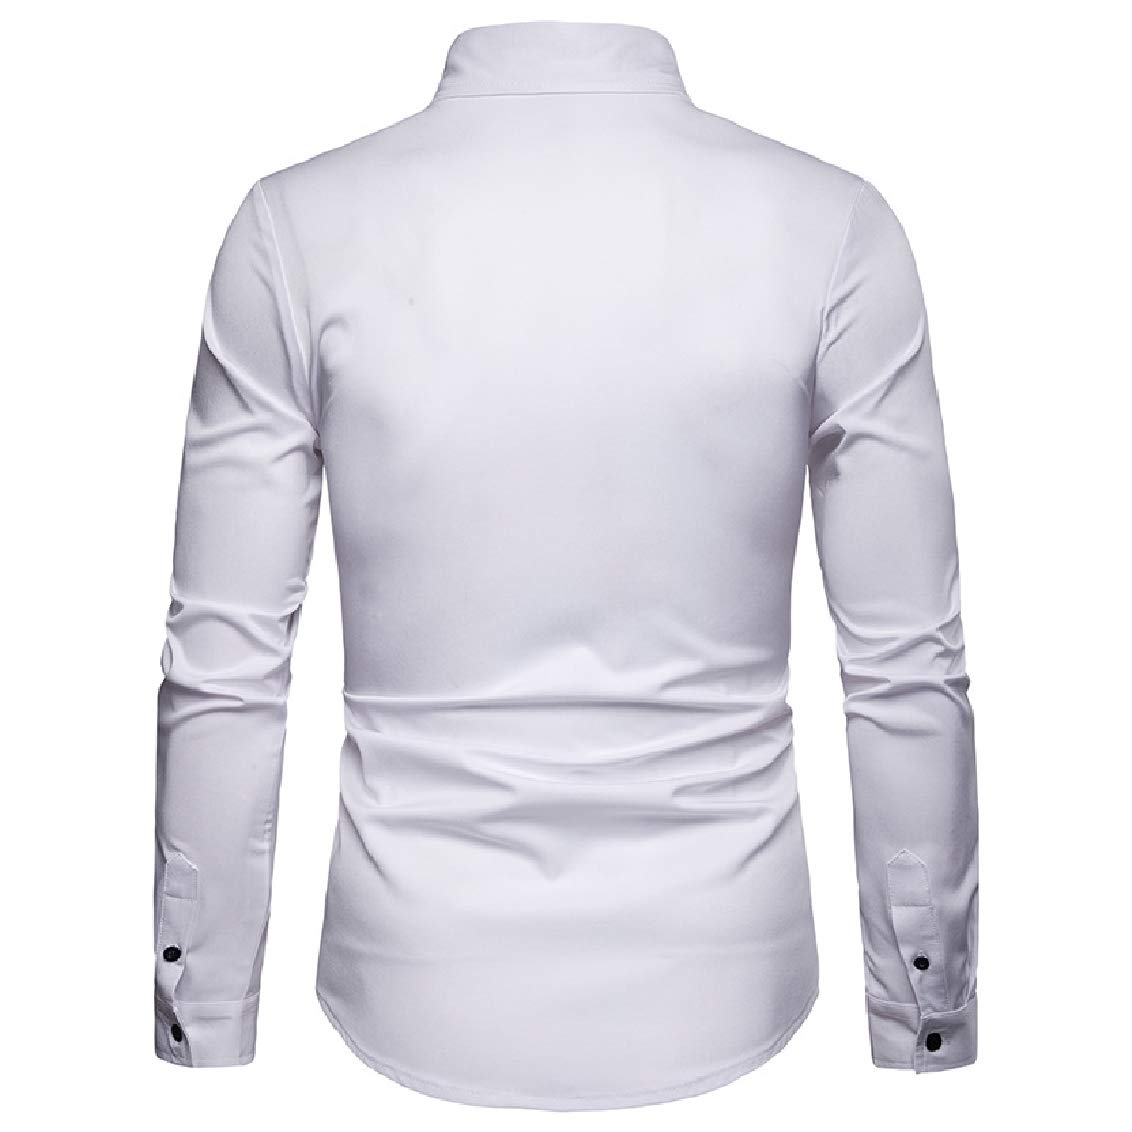 Highisa Mens Fashion Bussiness Long-Sleeve Trim-Fit Turn Down Collar Buttons Shirt